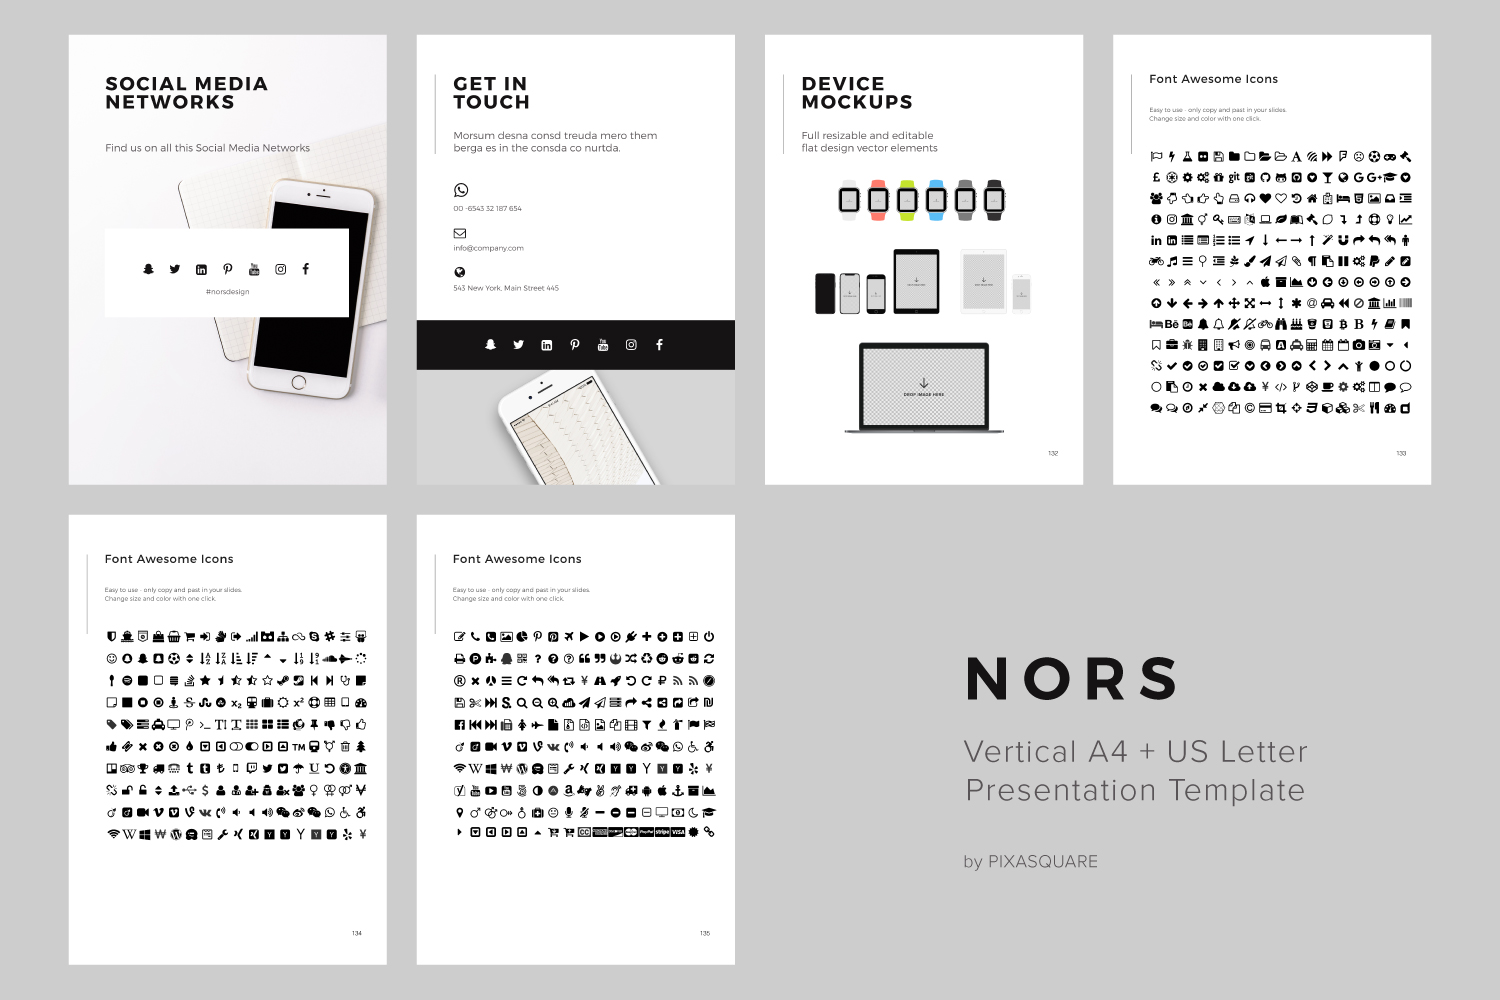 NORS Vertical Keynote + 20 Photos example image 12